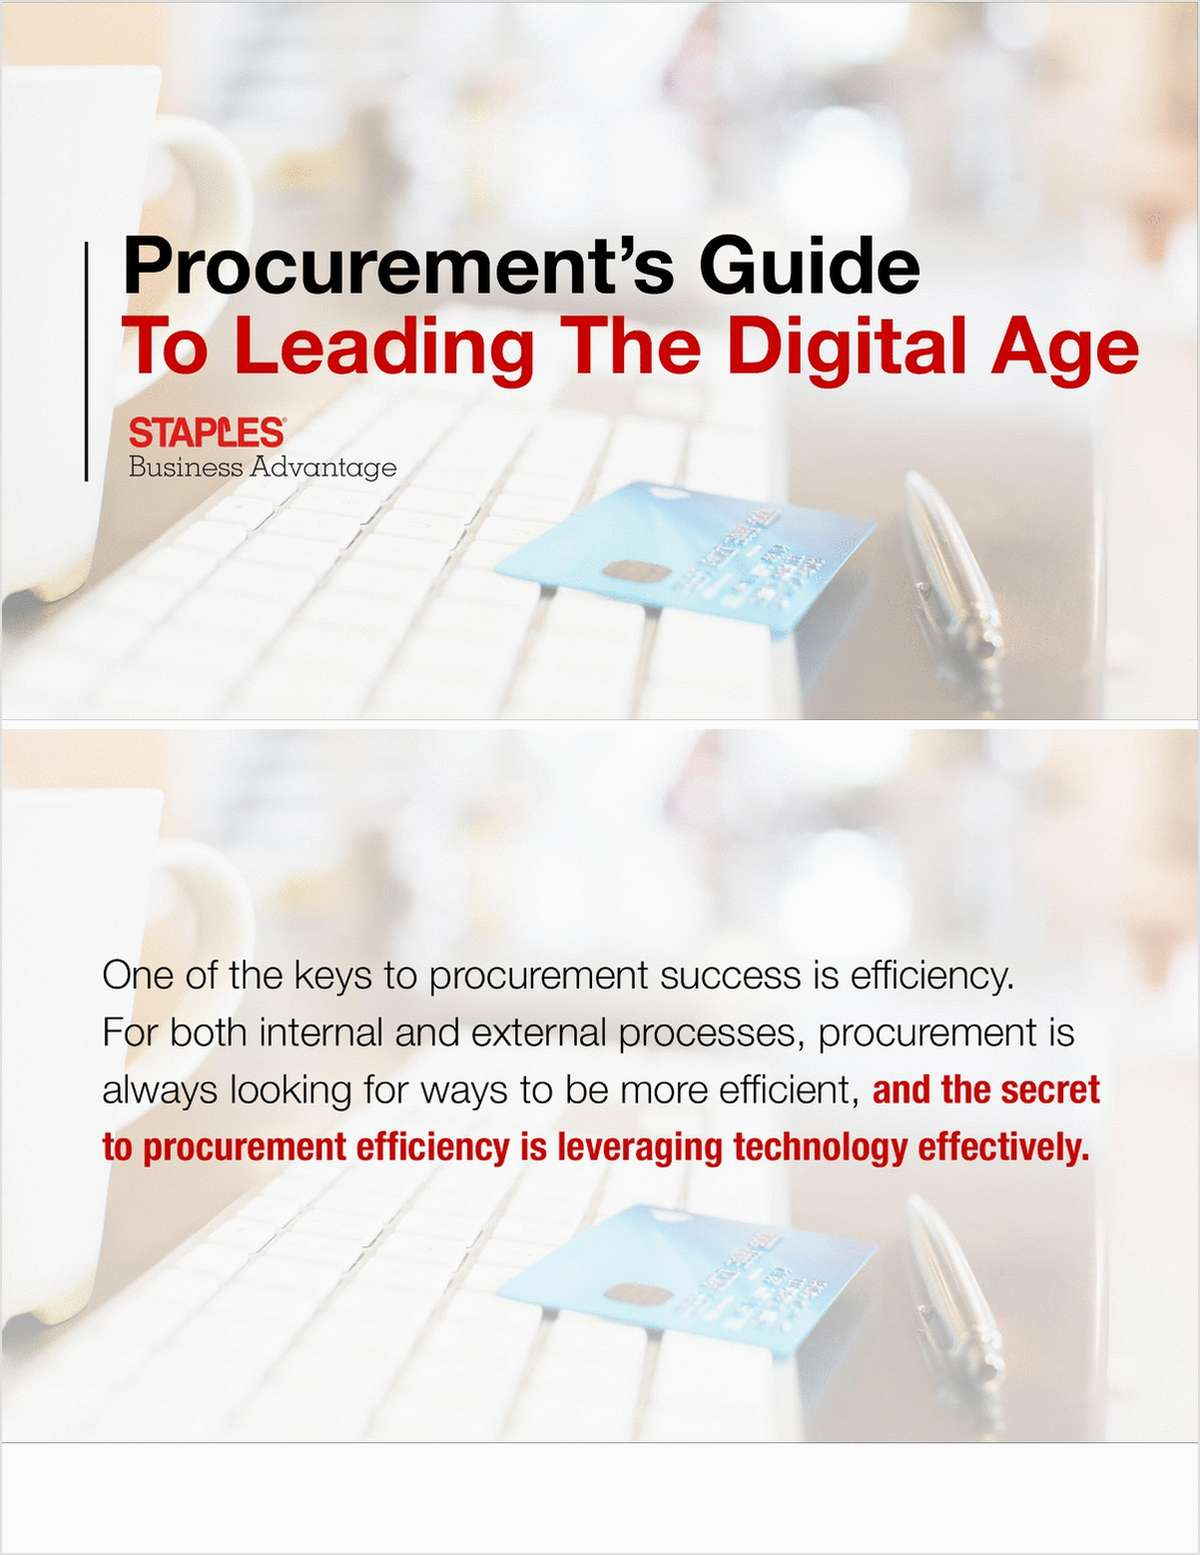 Procurement's Guide to Leading the Digital Age